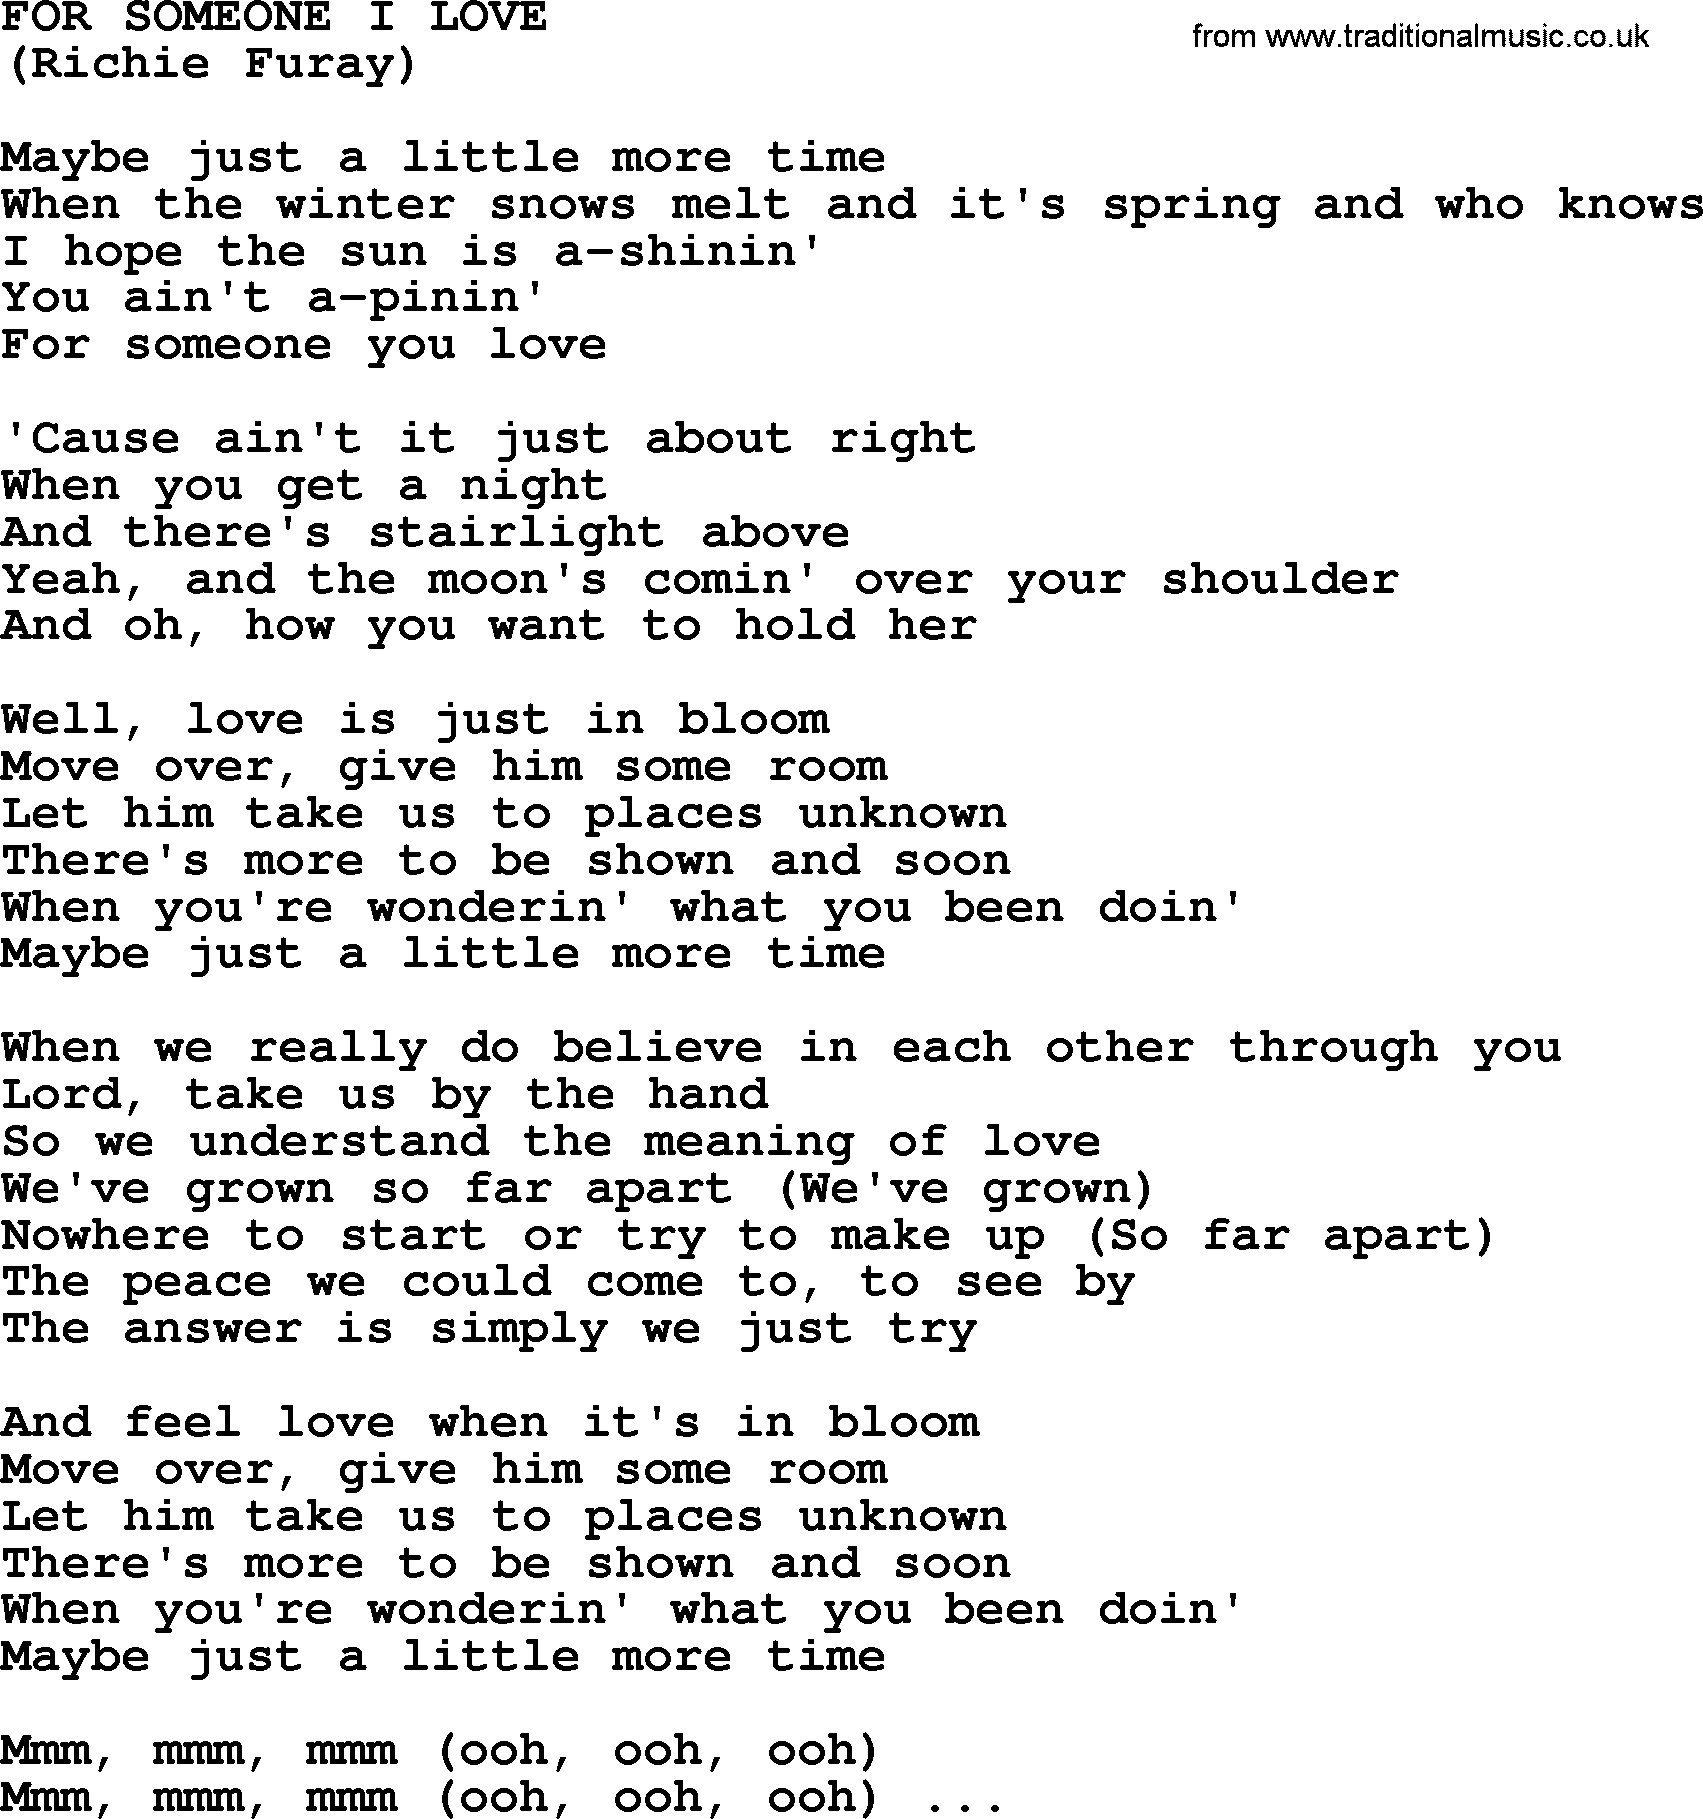 For Someone I Love, by The Byrds - lyrics with pdf